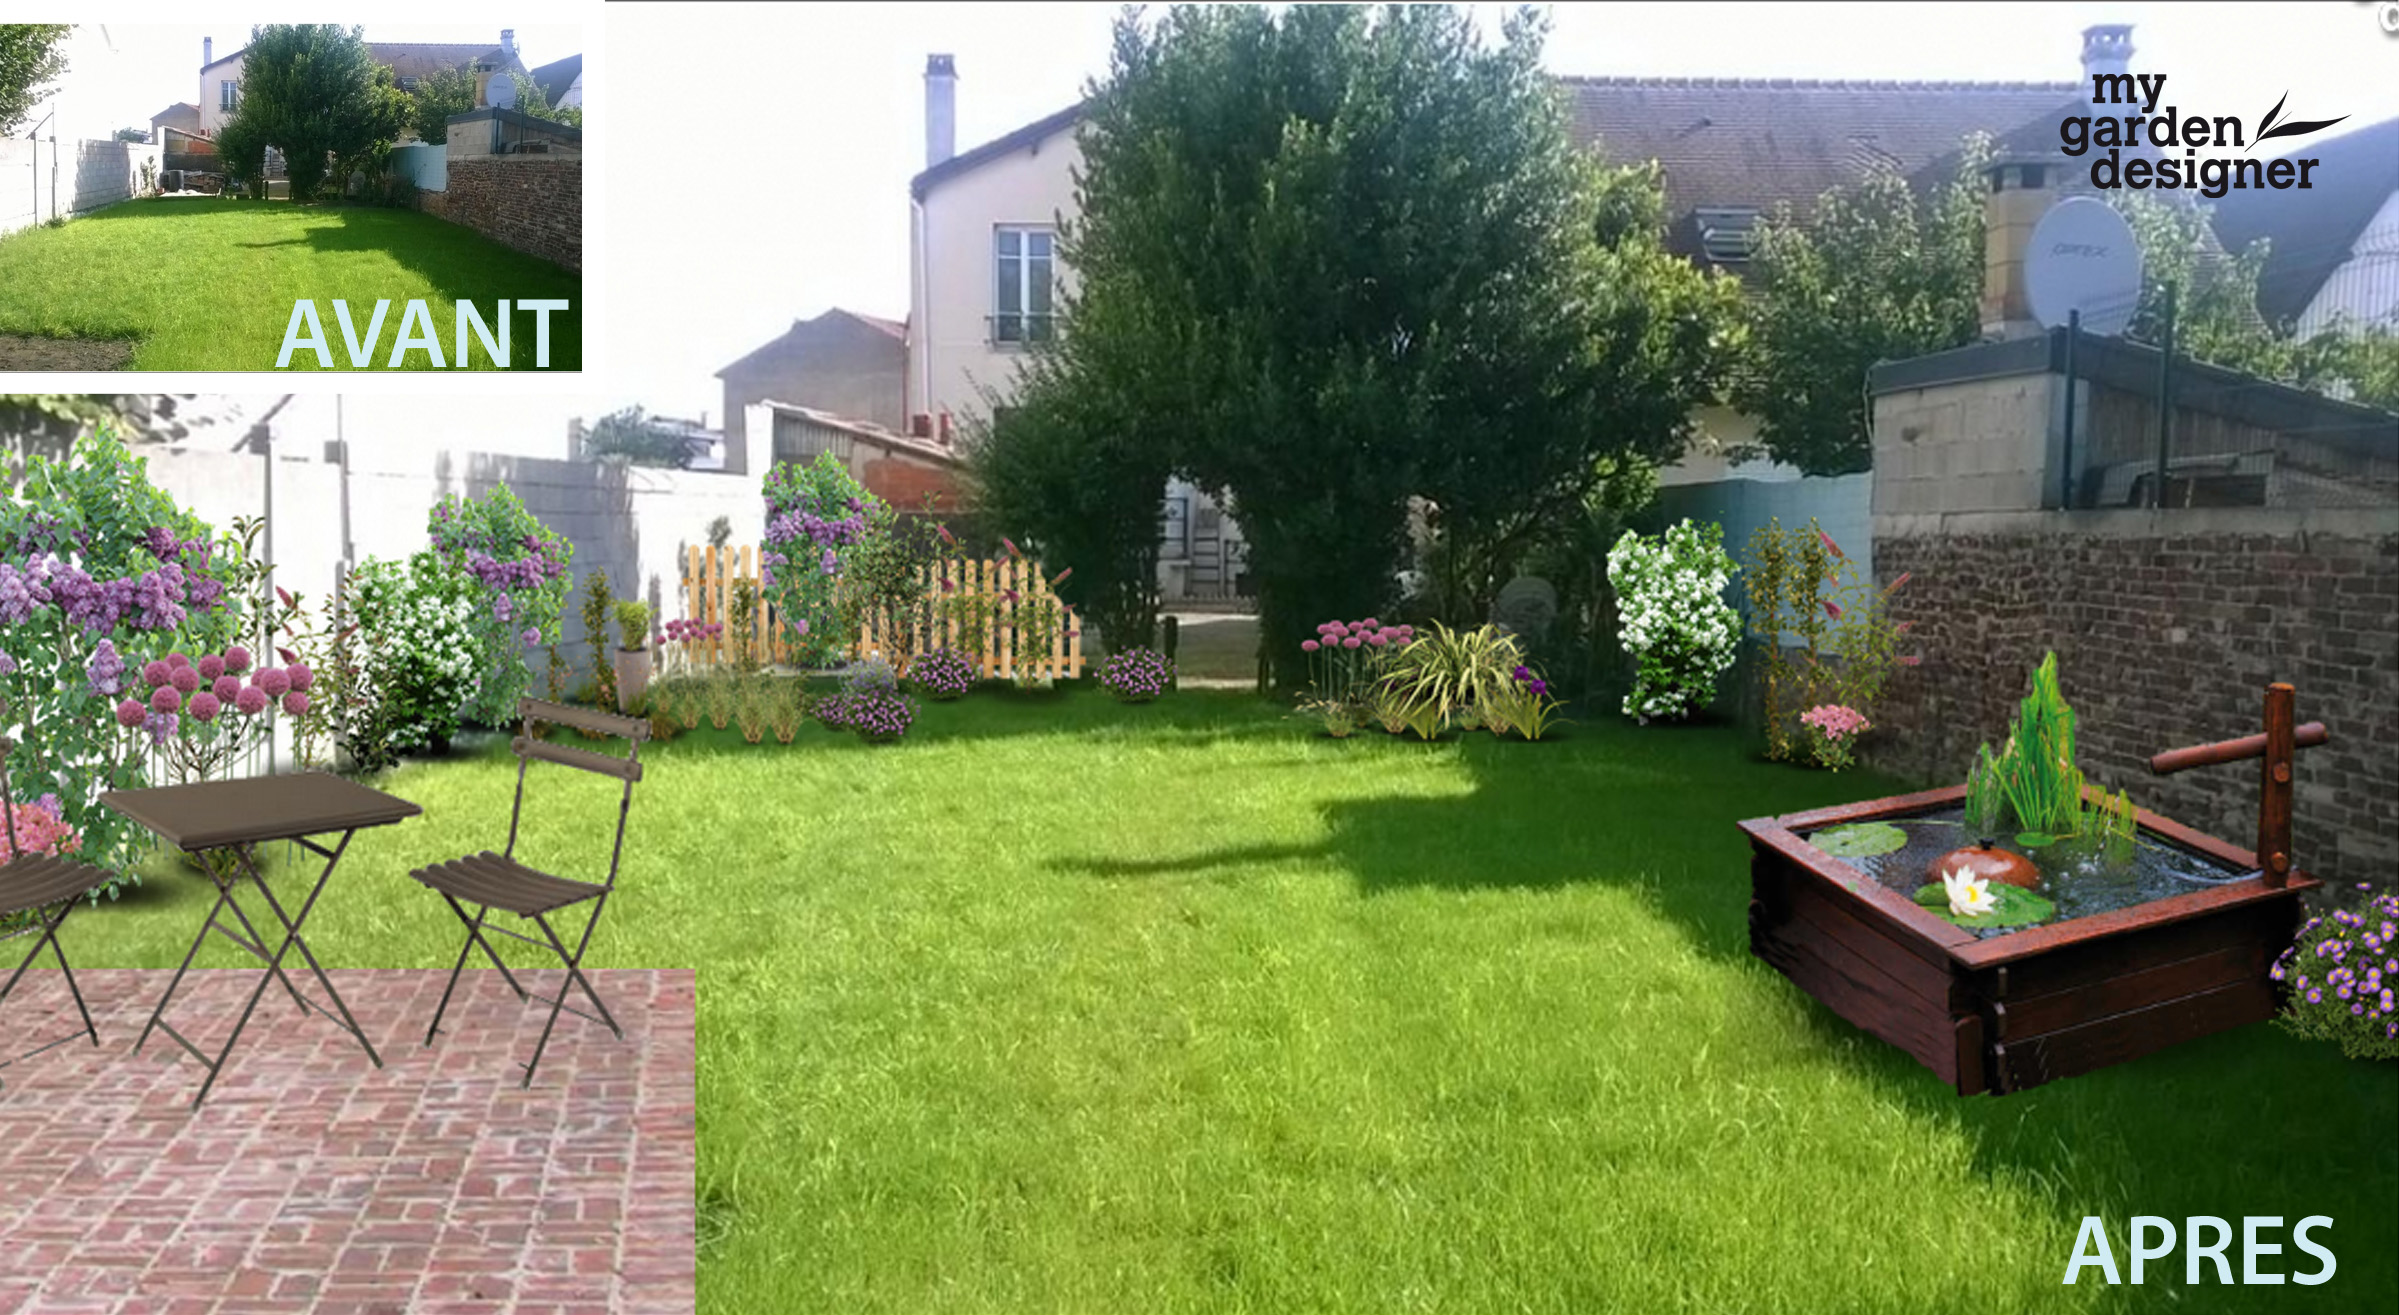 Am nager un jardin carr en ile de france monjardin for Amenagement jardin carre